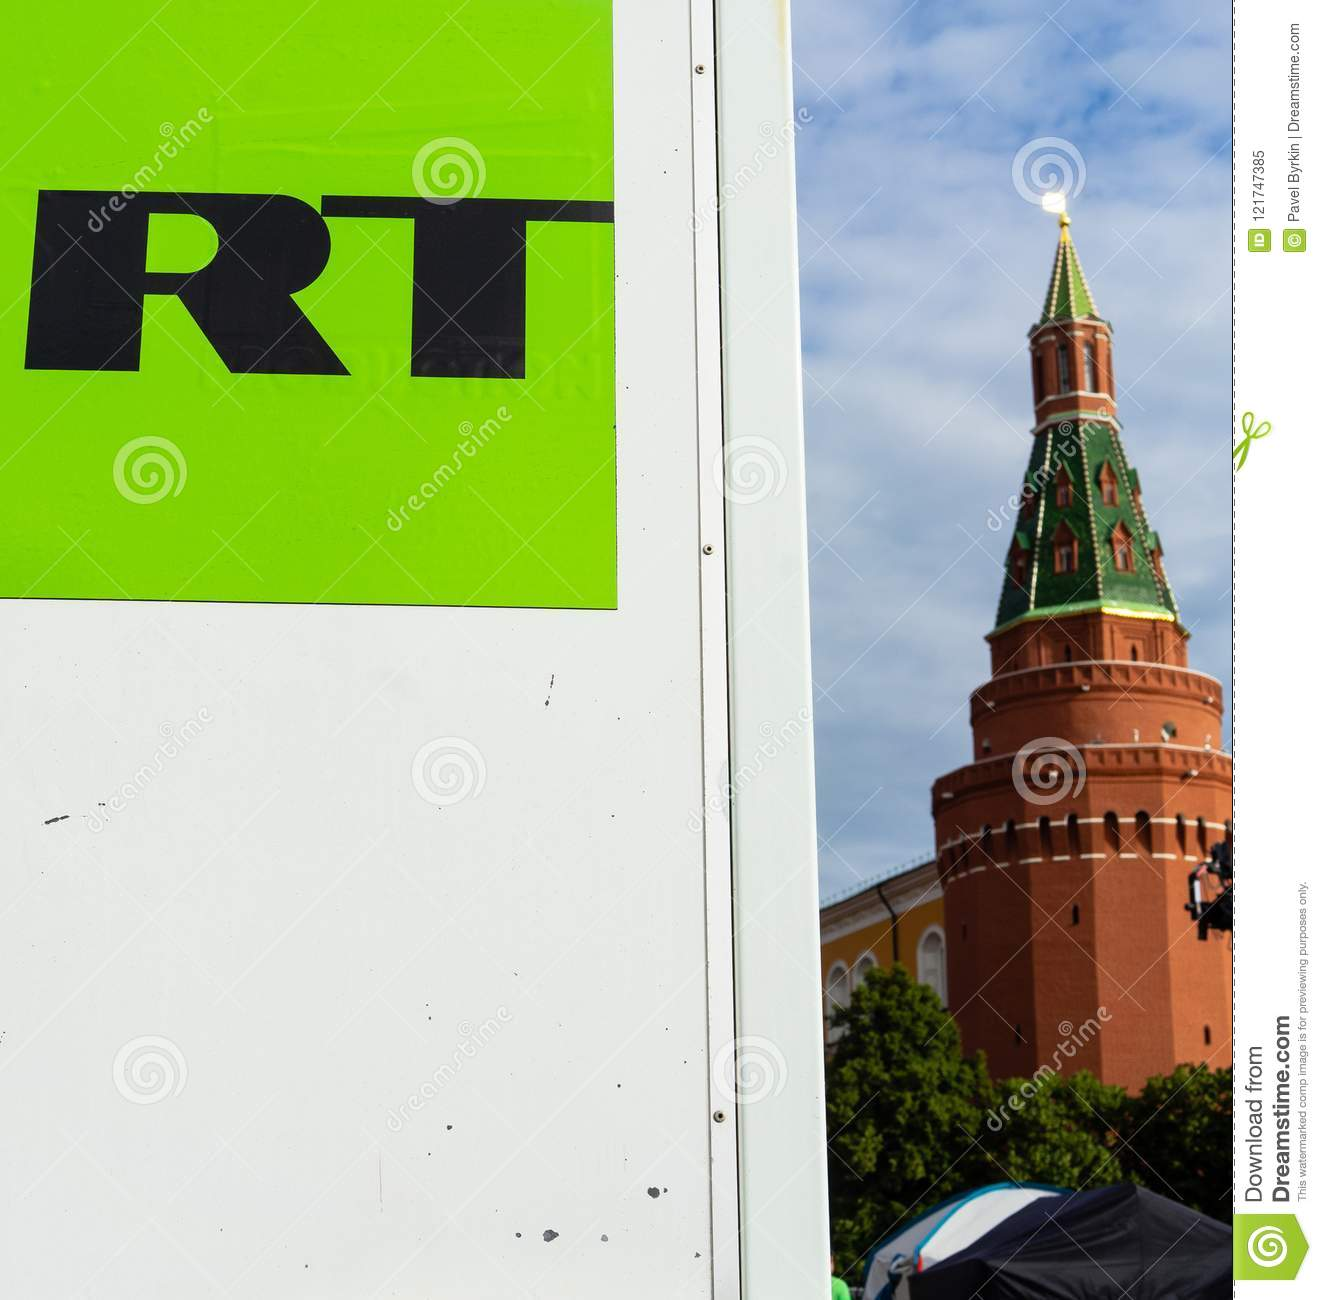 Logo Of The Russian TV Channel Editorial Image - Image of